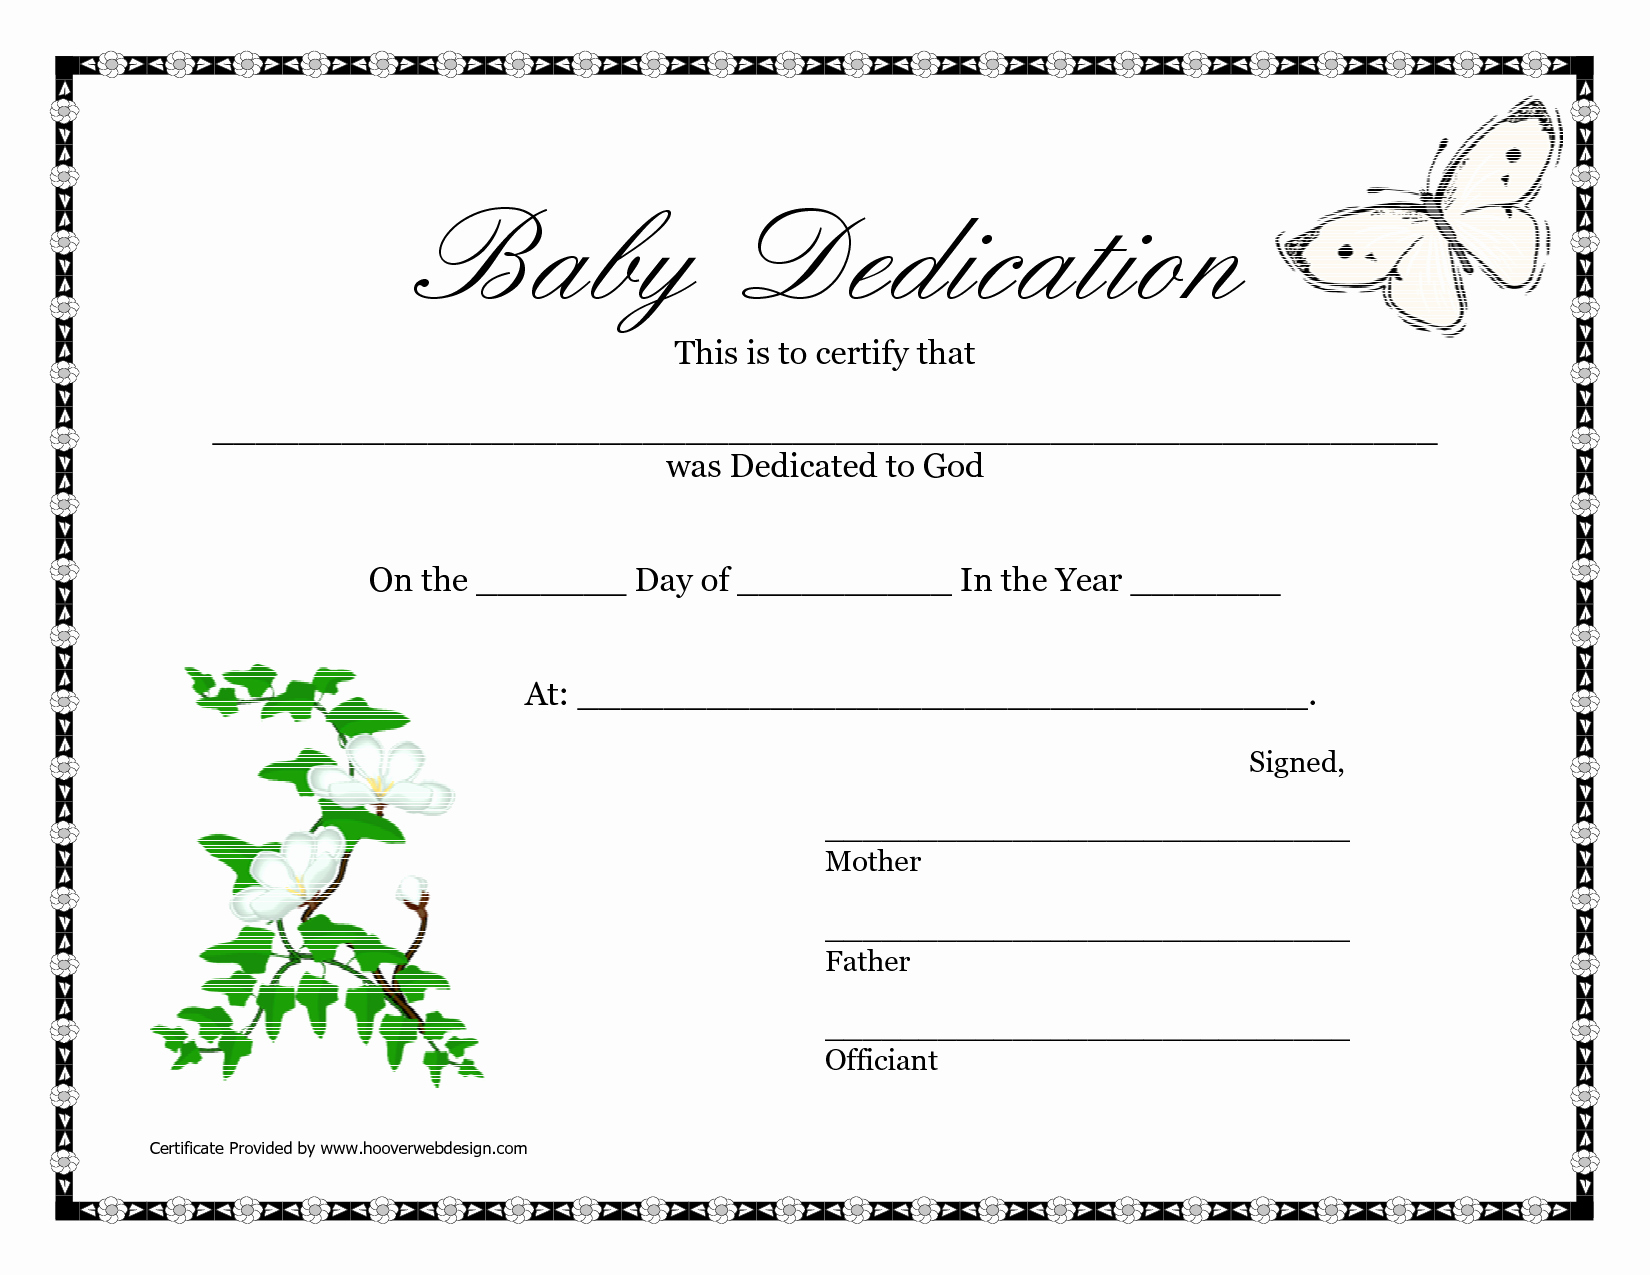 Baby Dedication Certificate Templates Inspirational Best S Of Baby Certificate Template Free Printable